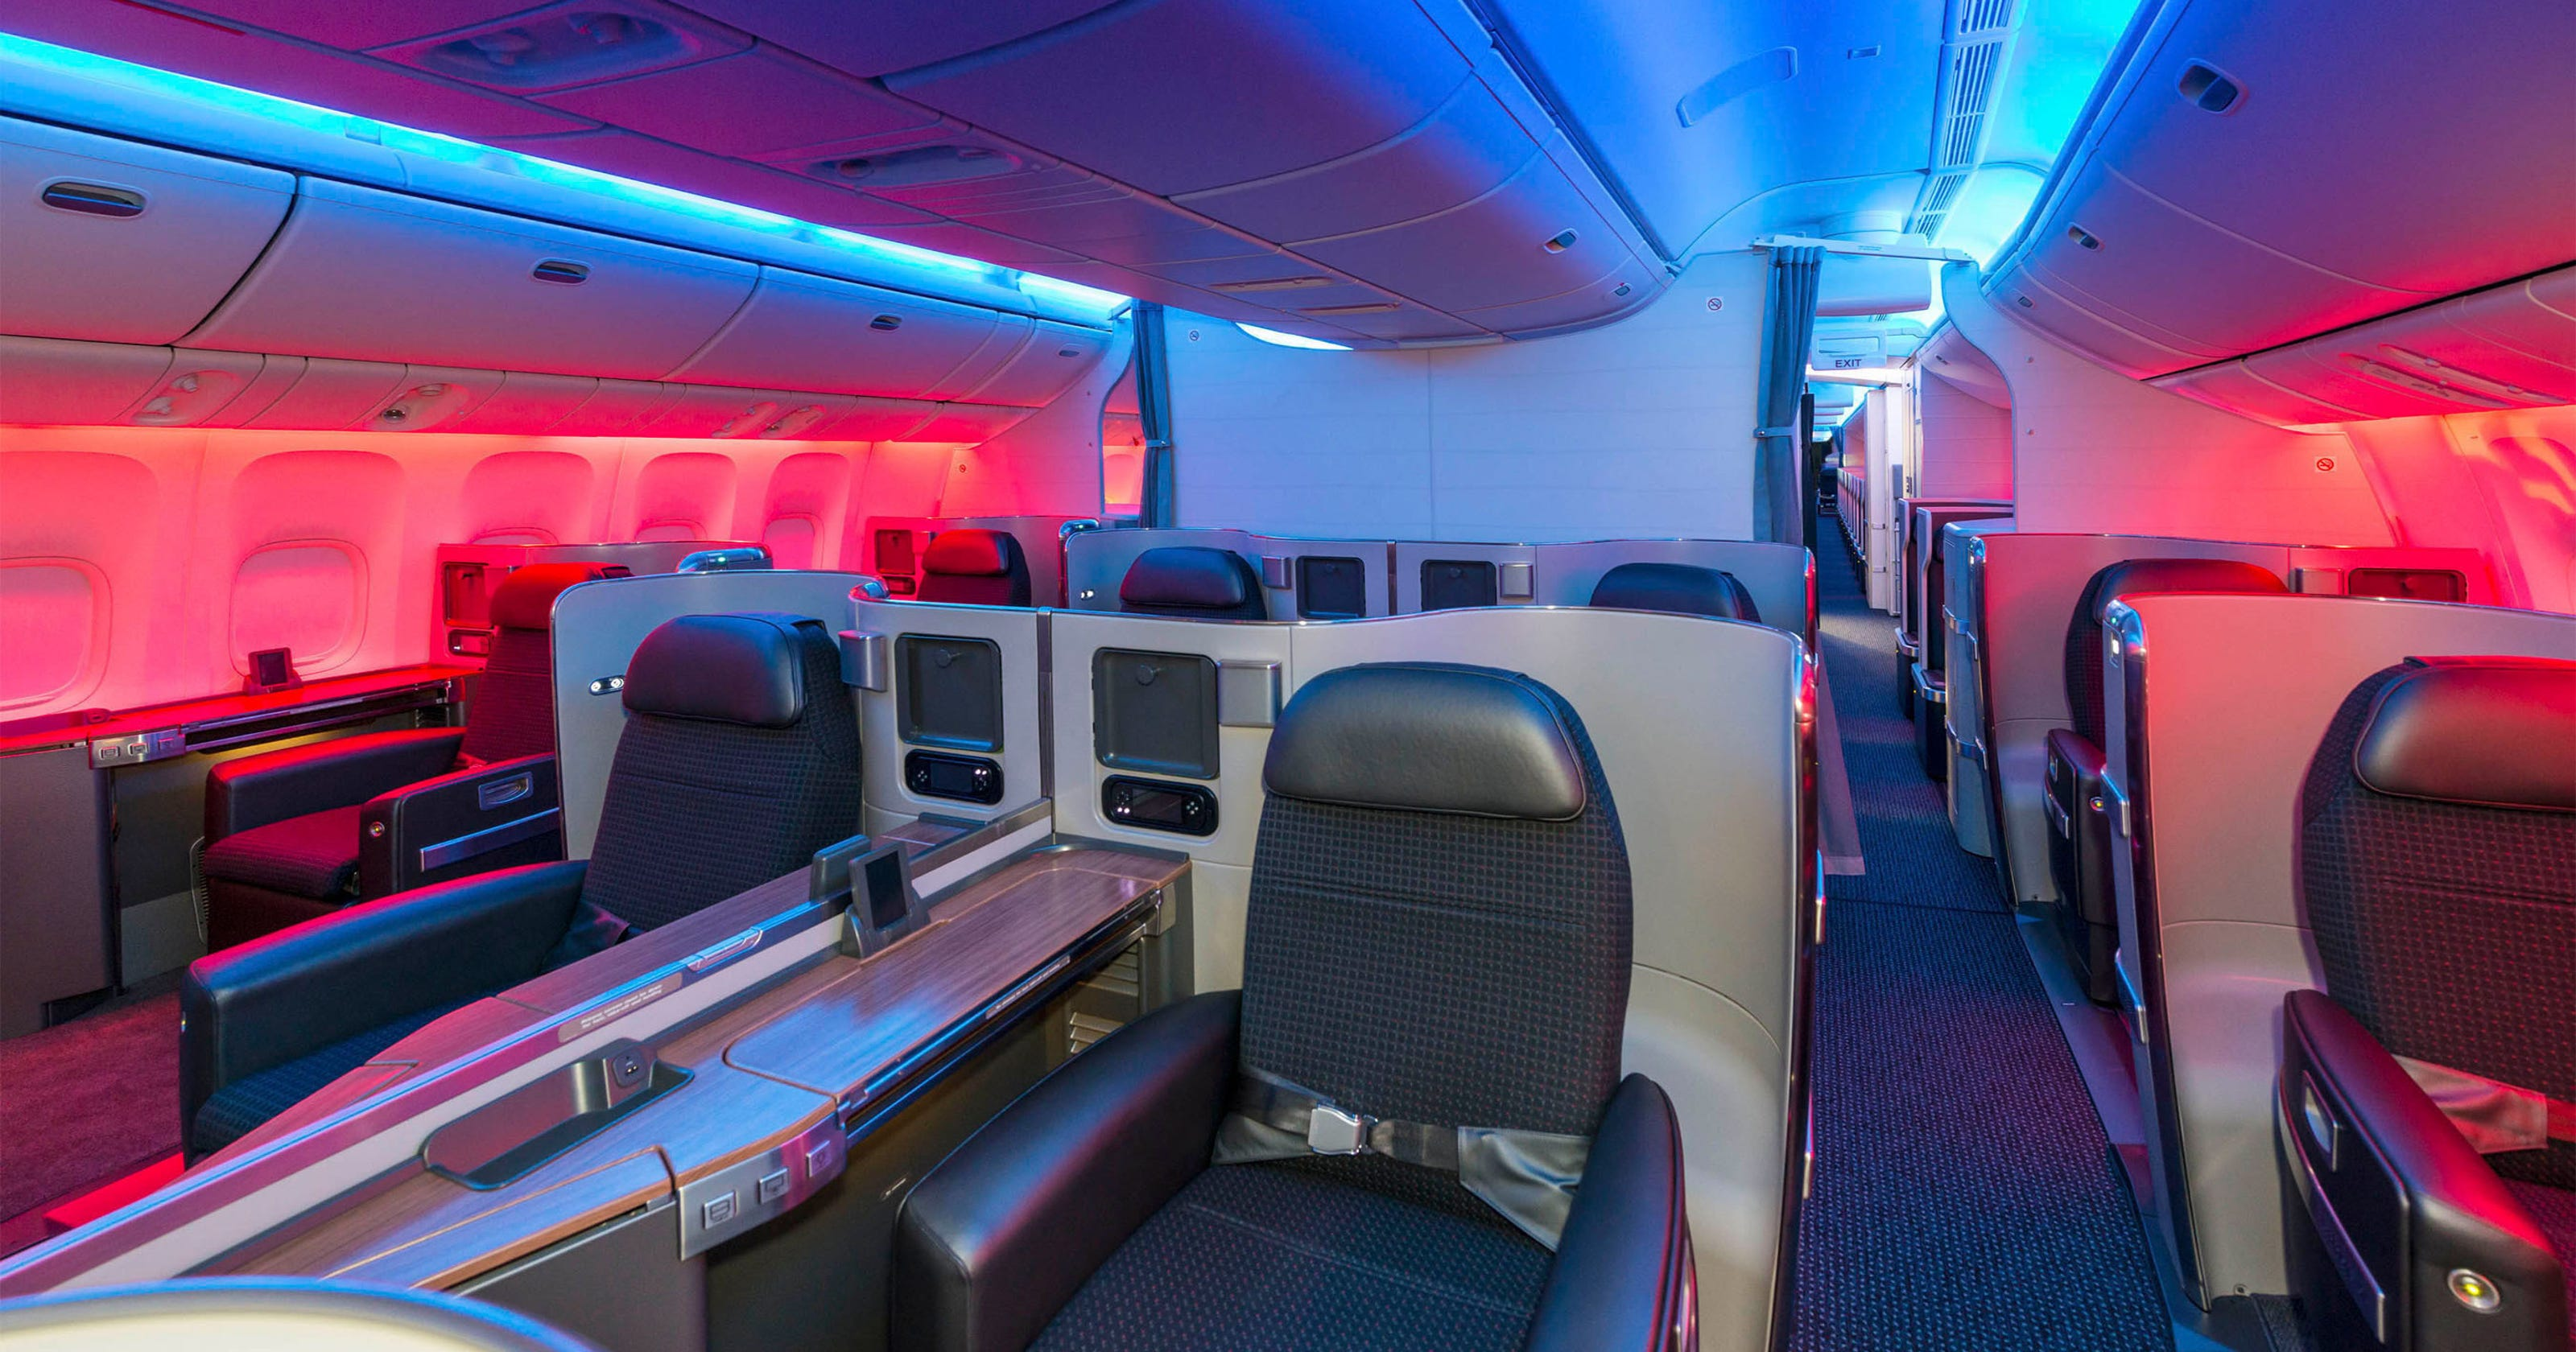 Aircraft Cabin Comfort System Market Developments, Growing